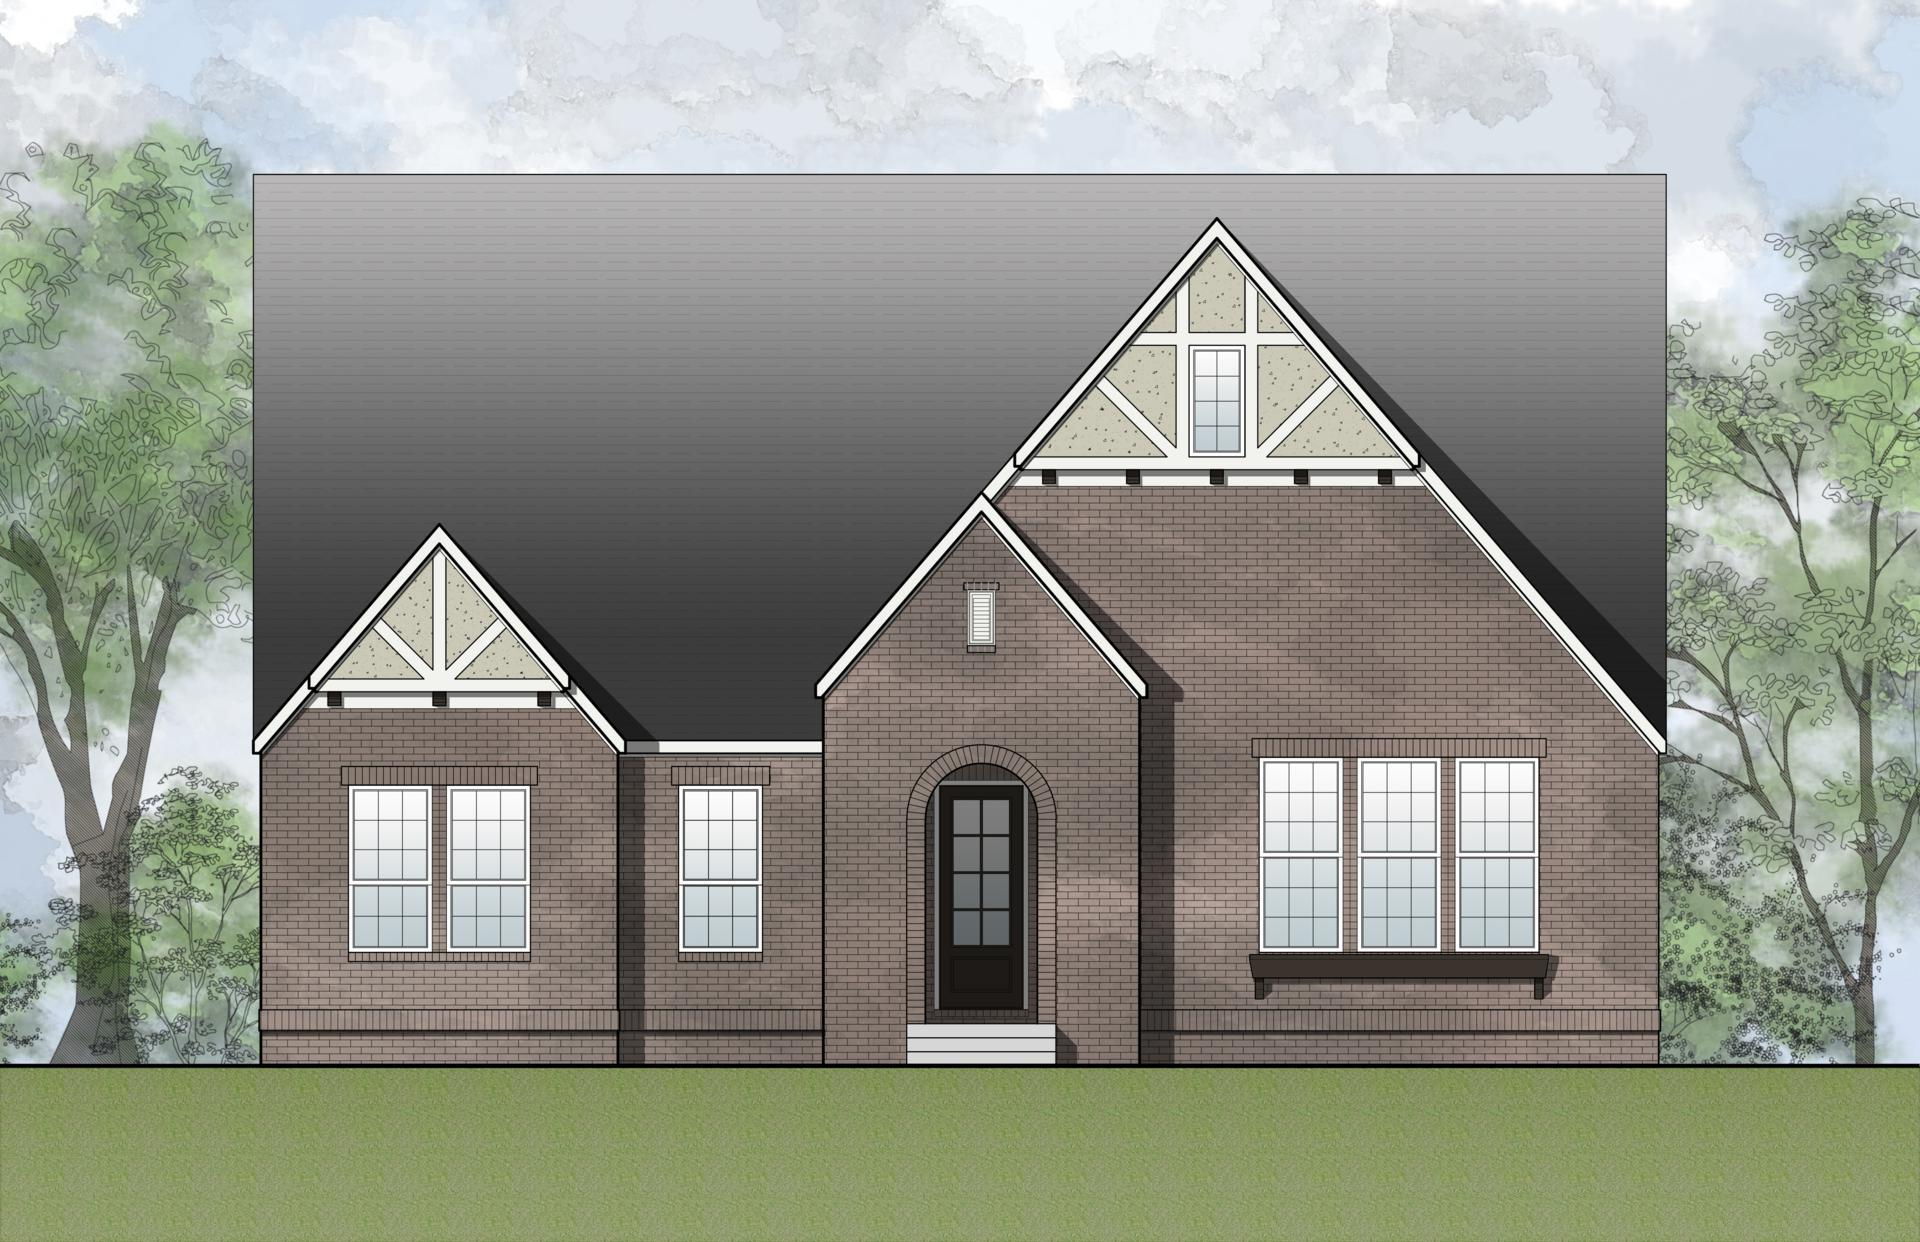 Exterior featured in the Brynlee IV By Drees Custom Homes in Dallas, TX